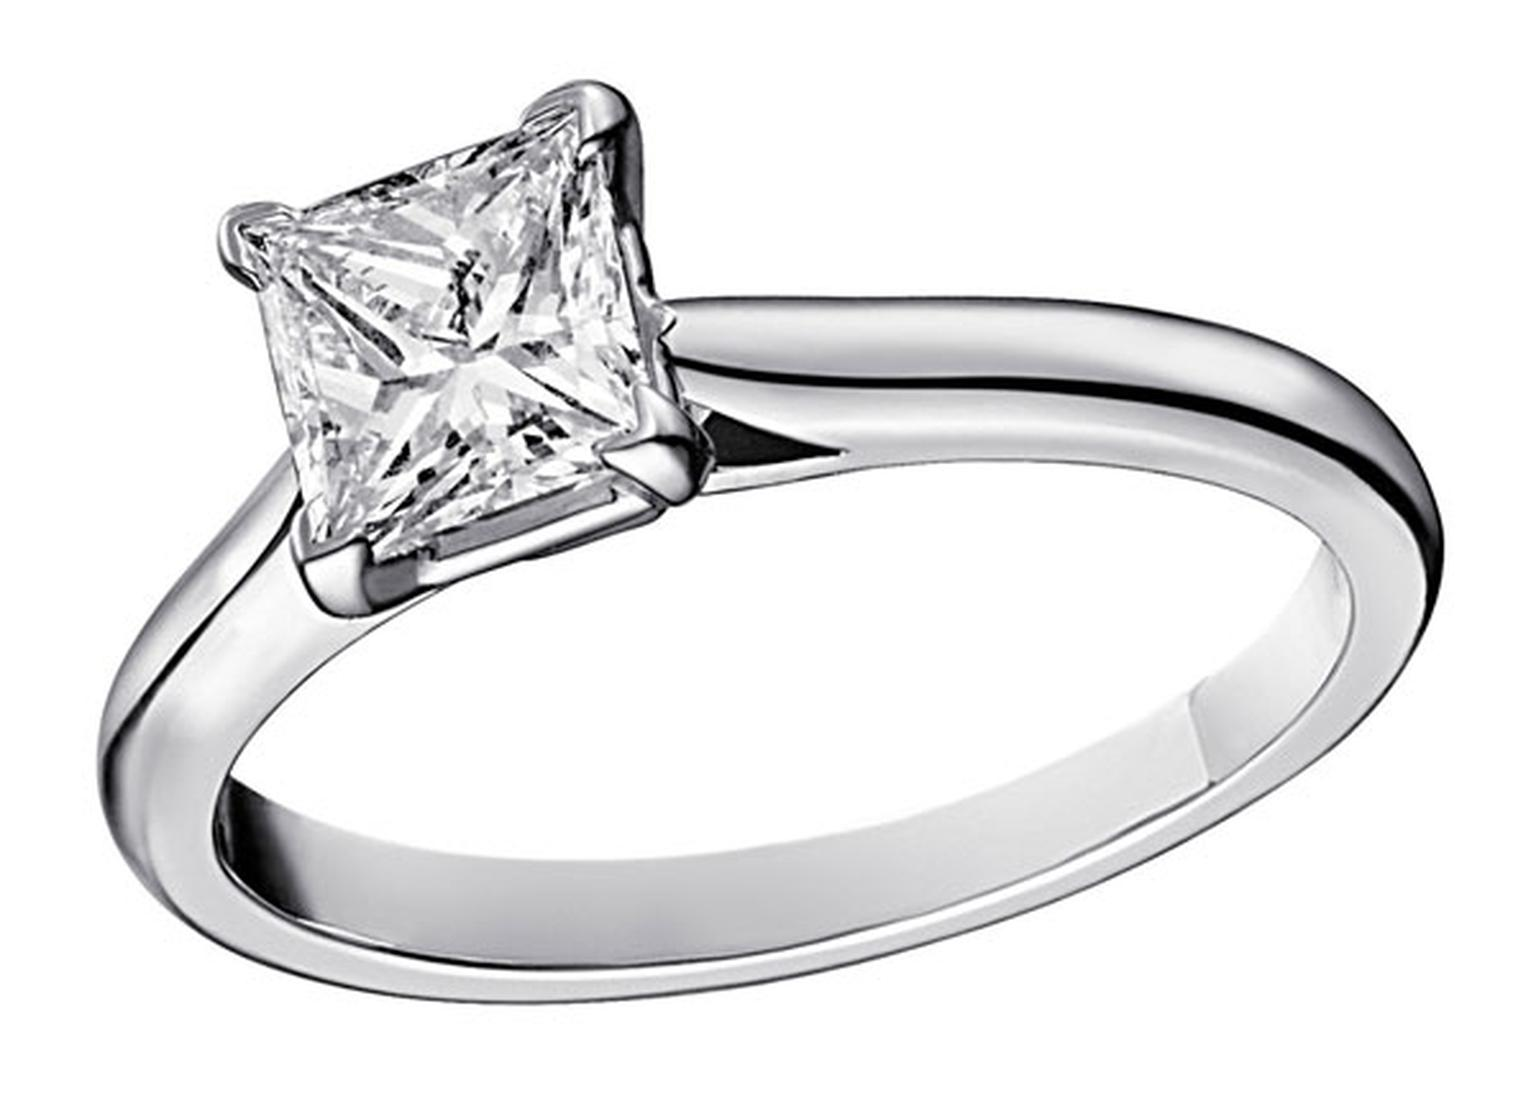 Cartier Solitaire 1895  diamond engagement ring set in platinum with a central princess-cut diamond.